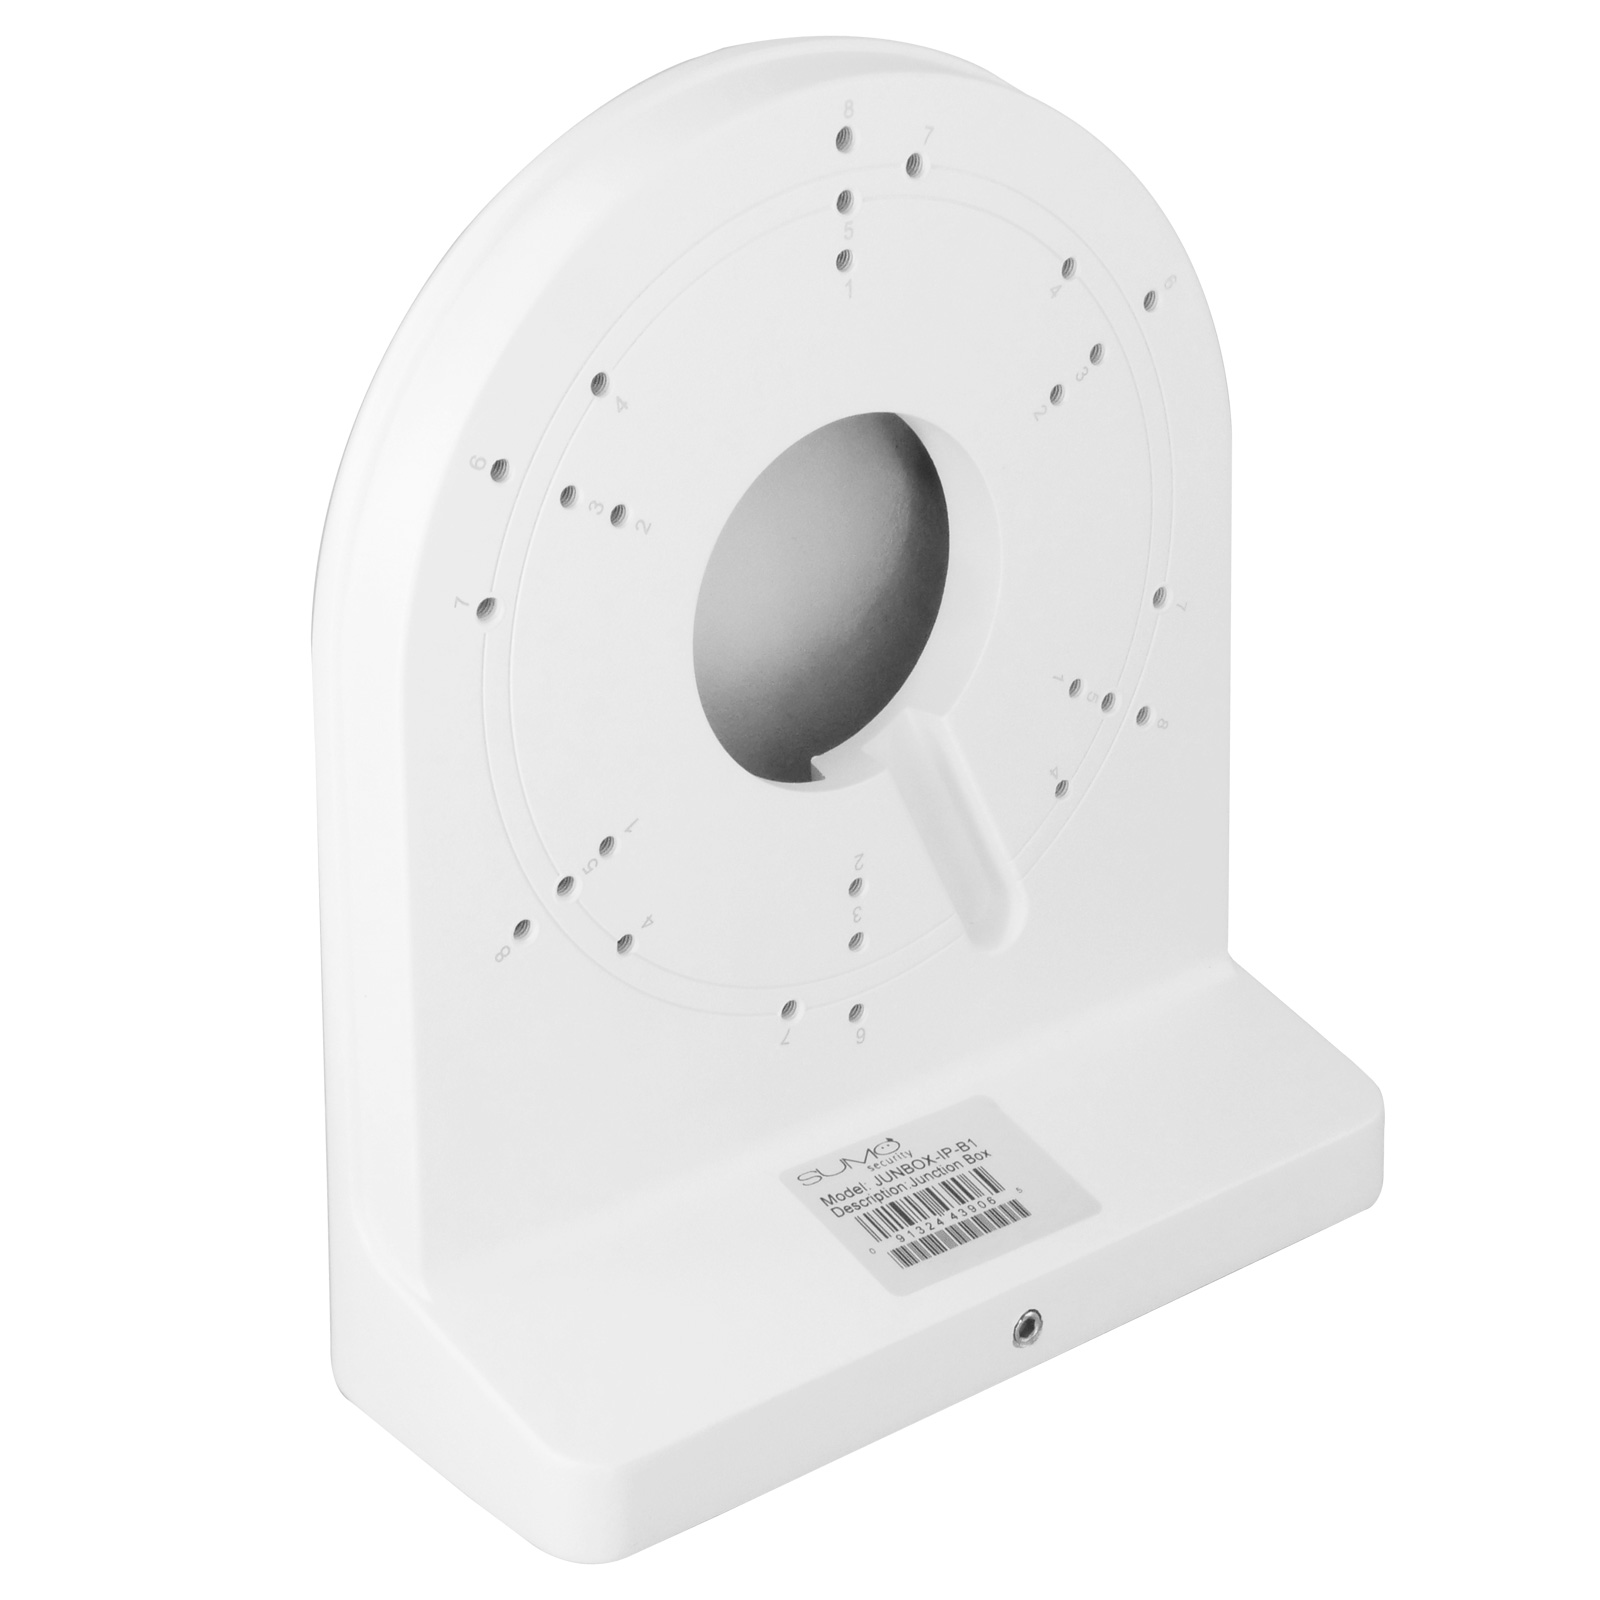 Junction Box for Big Dome Cameras, 2.95 x 6.44 x 7.35 inches - White